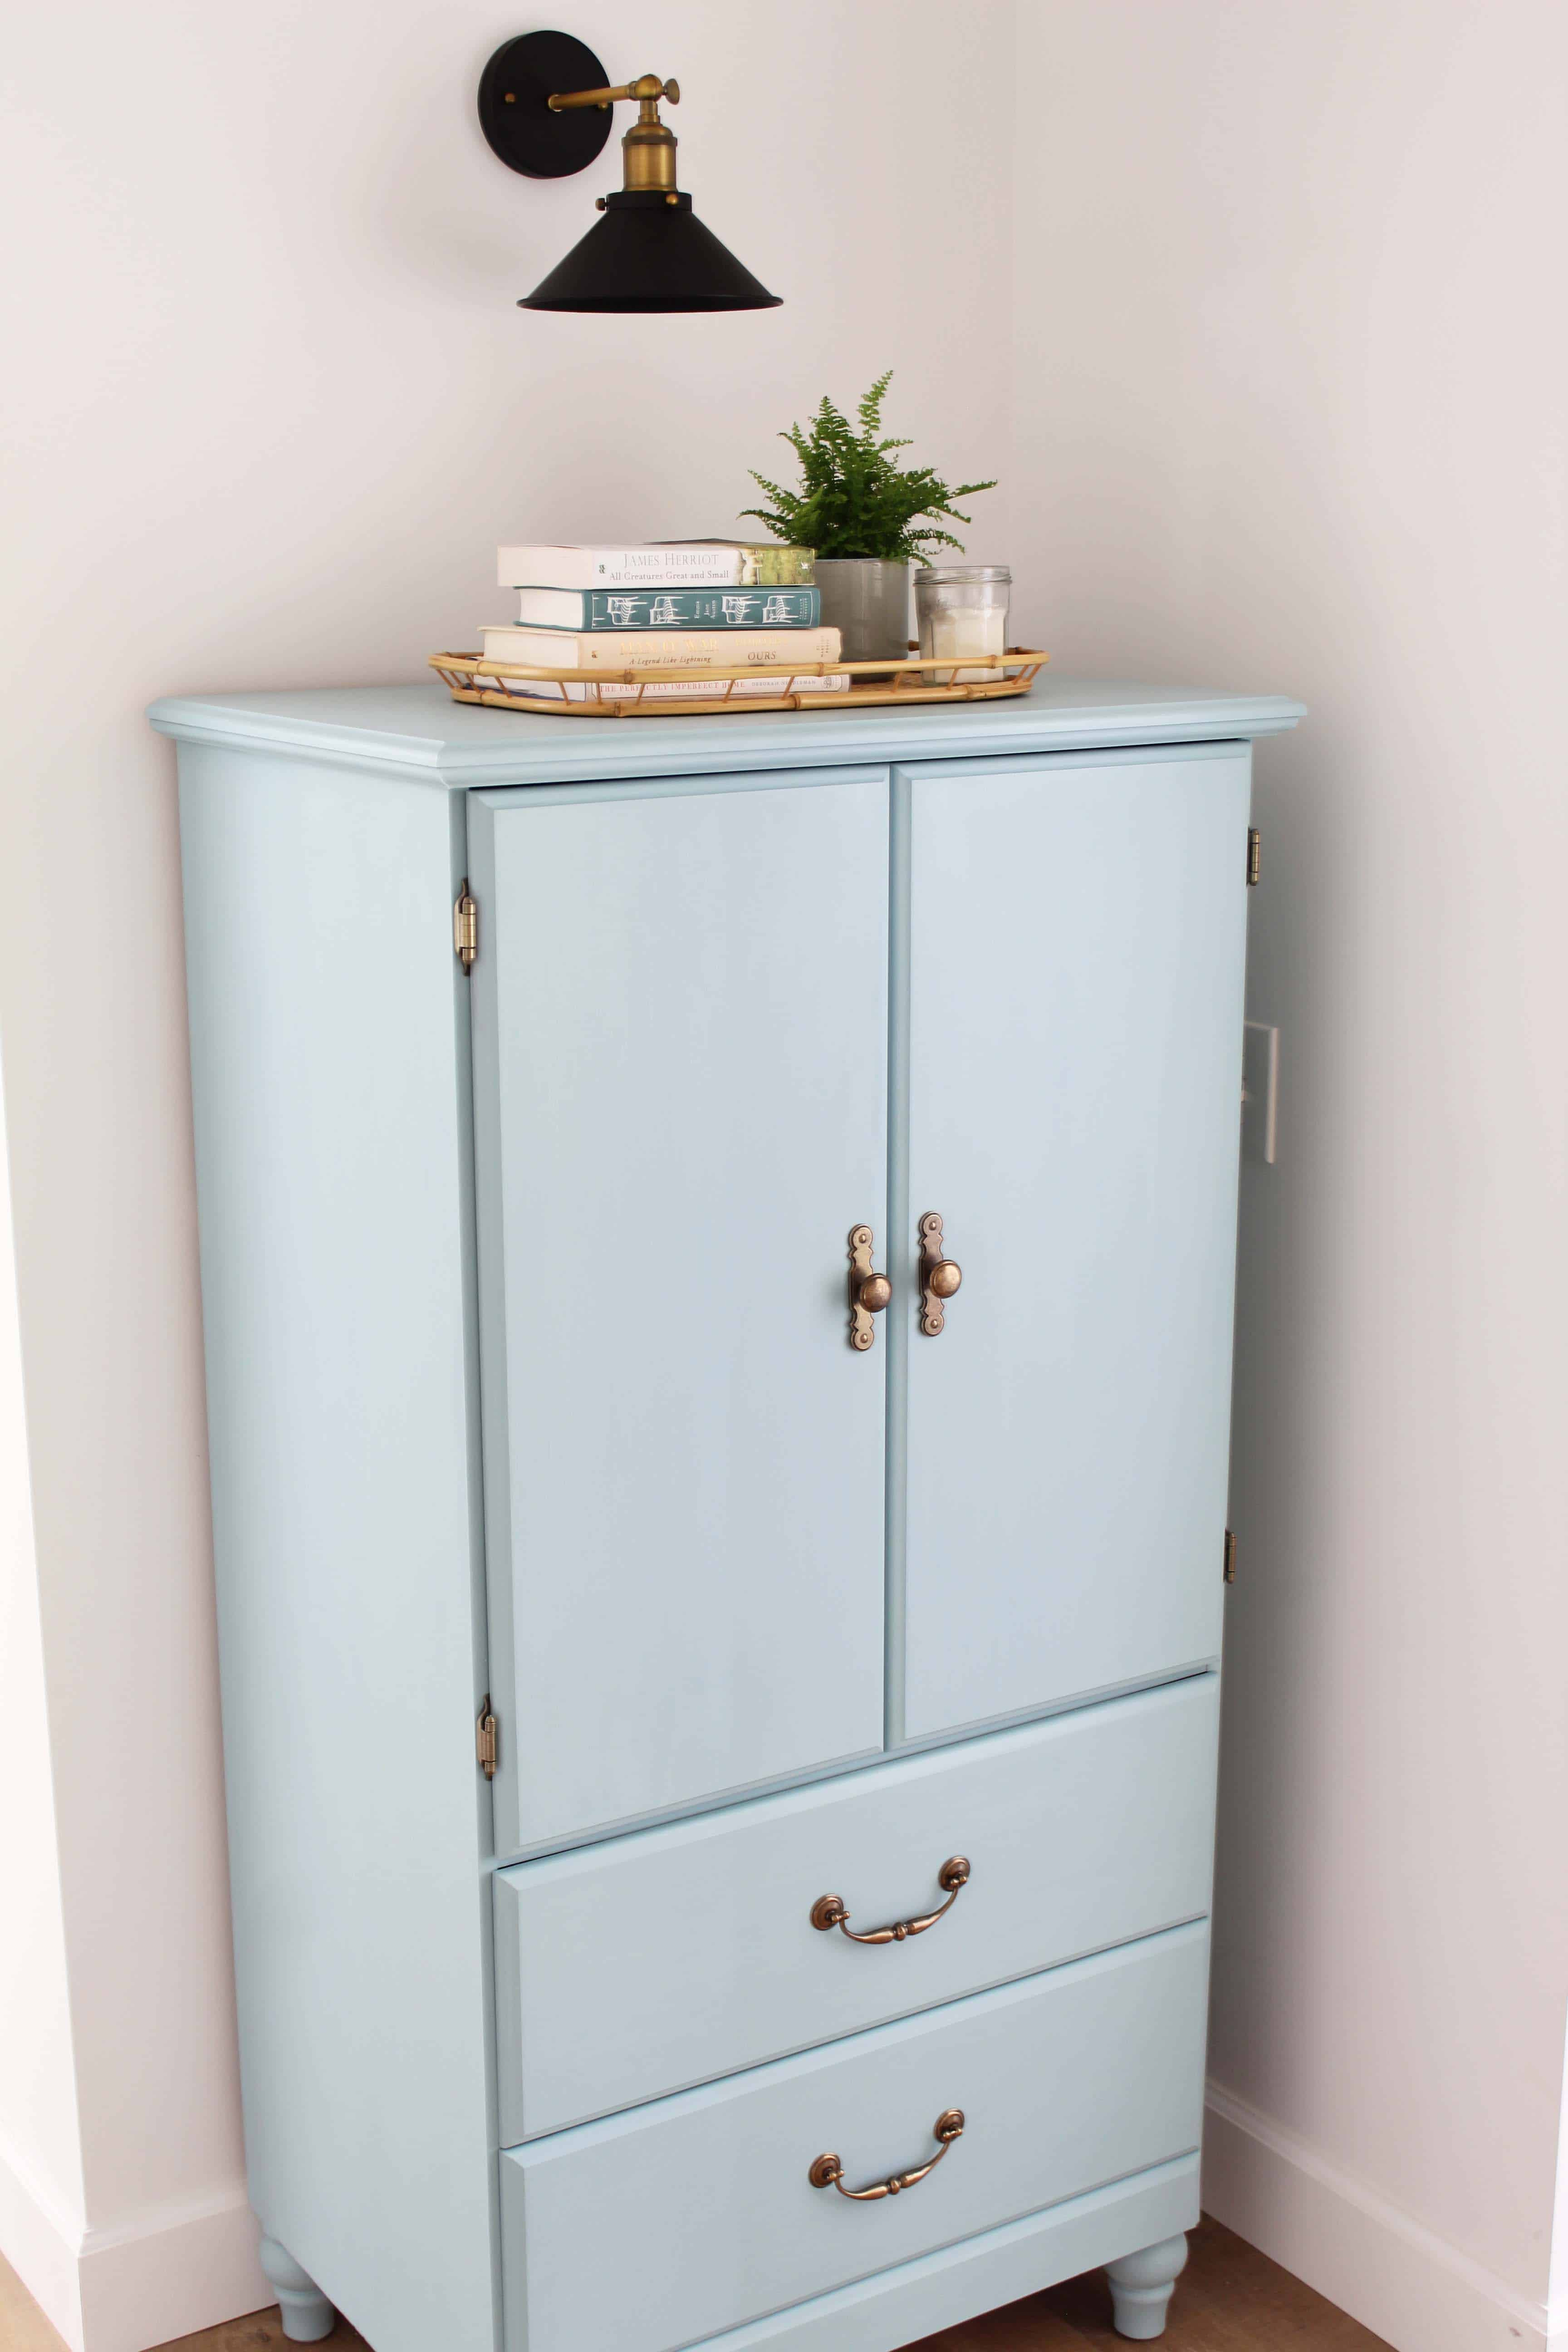 Thrifted cabinet makeover - DIY armoire upcycle project - A Nod to Navy